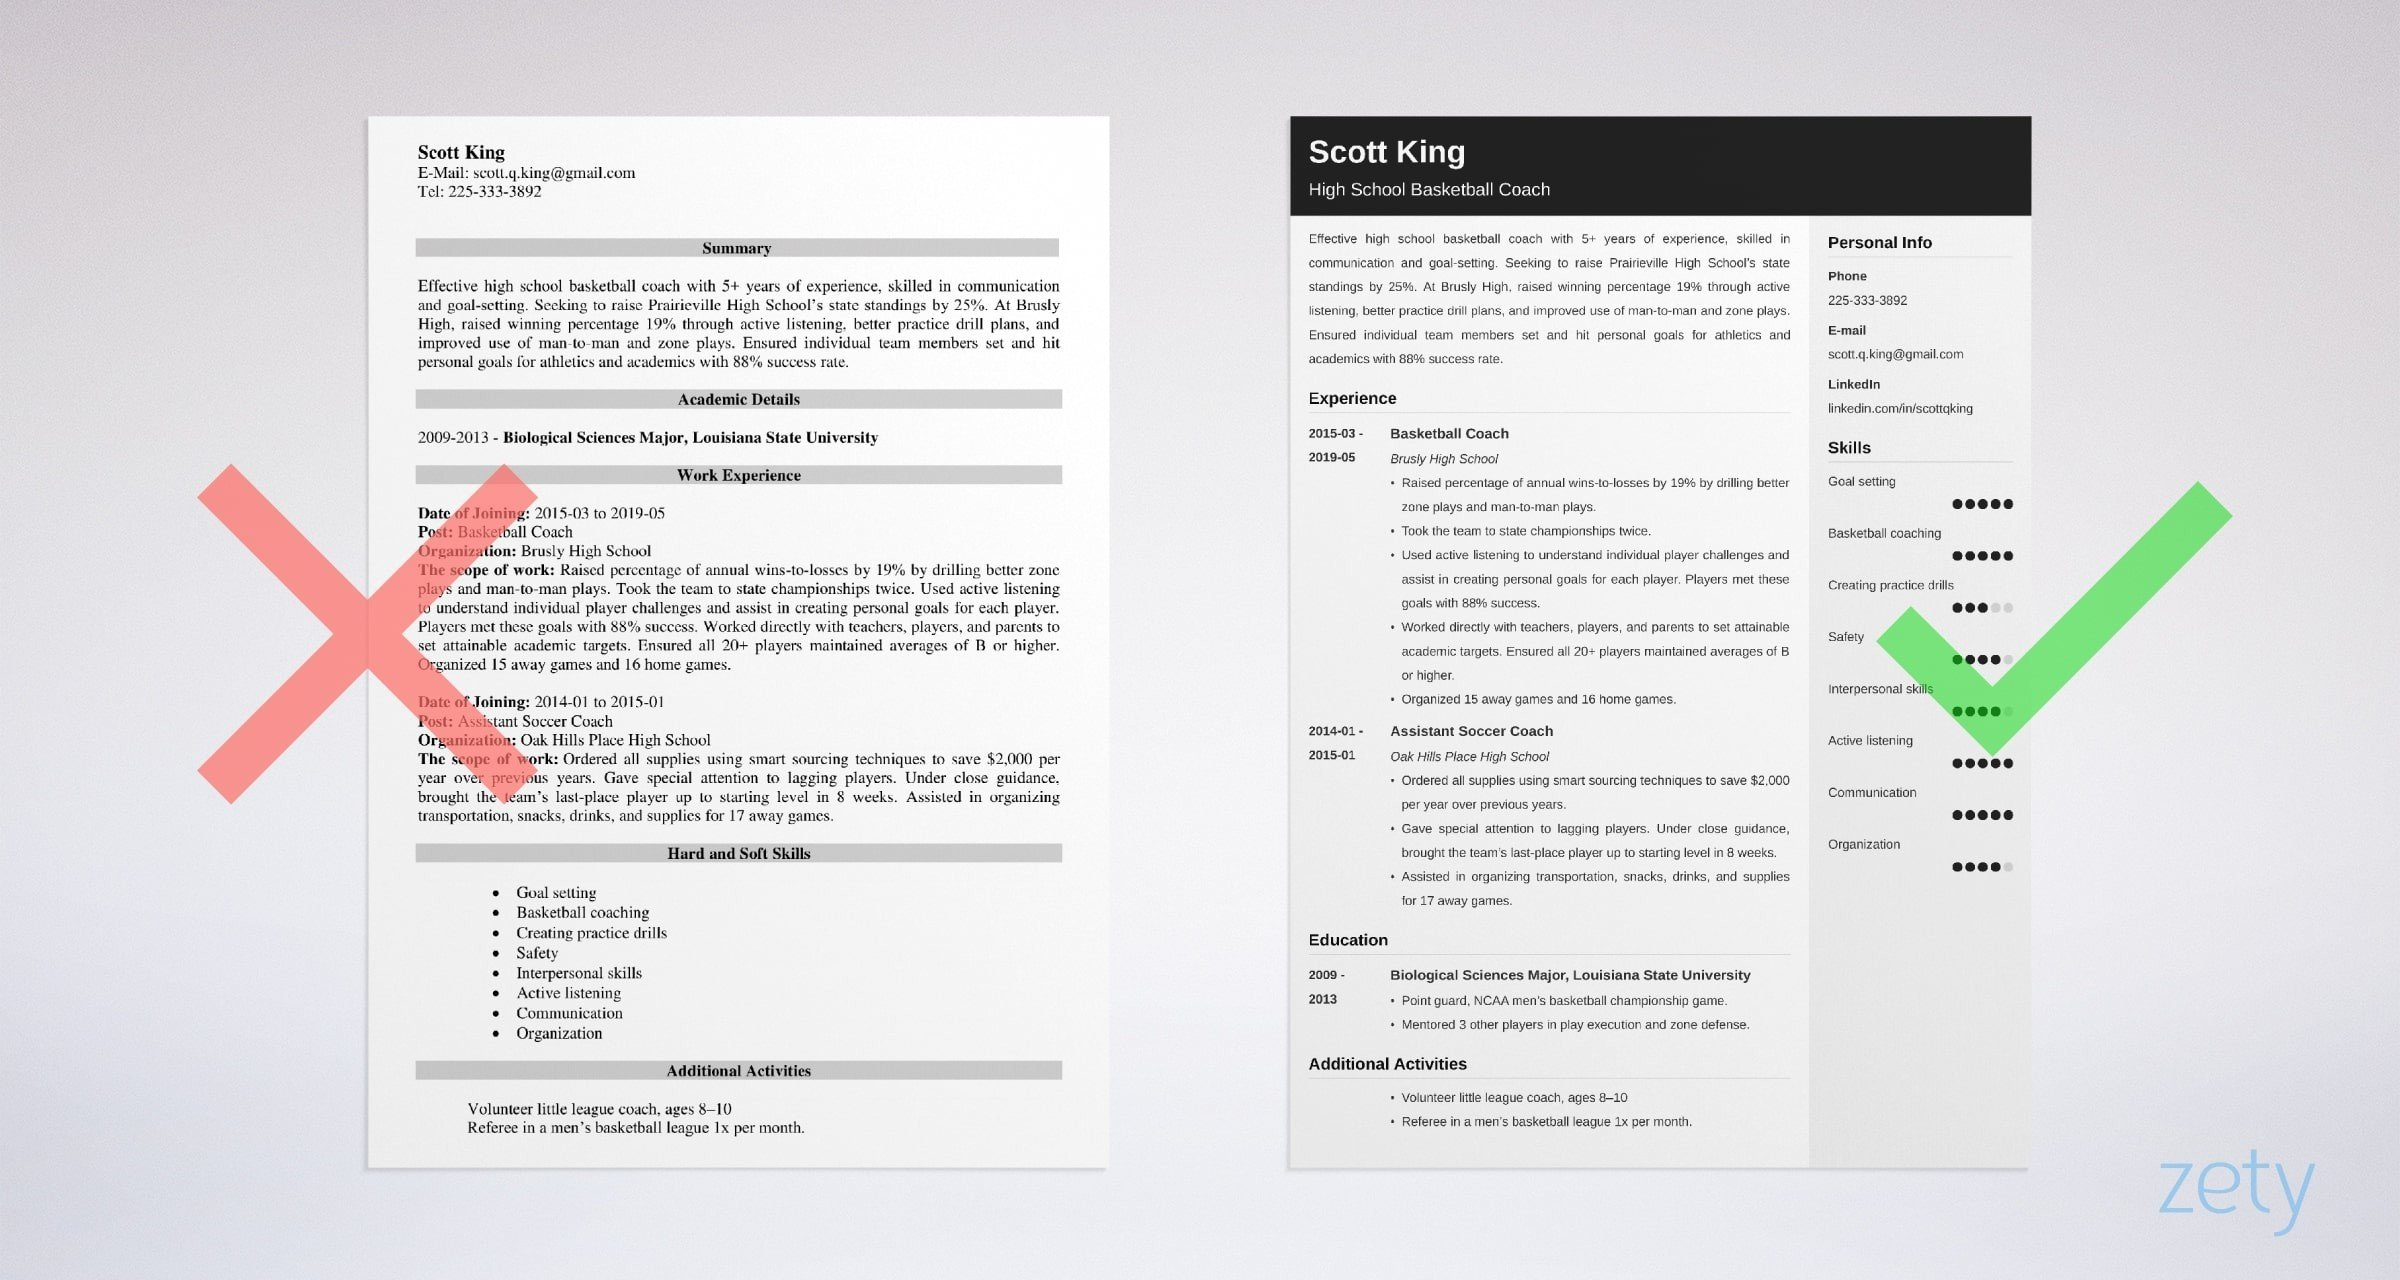 Coaching Resume: Sample and Complete Writing Guide [20+ Tips]